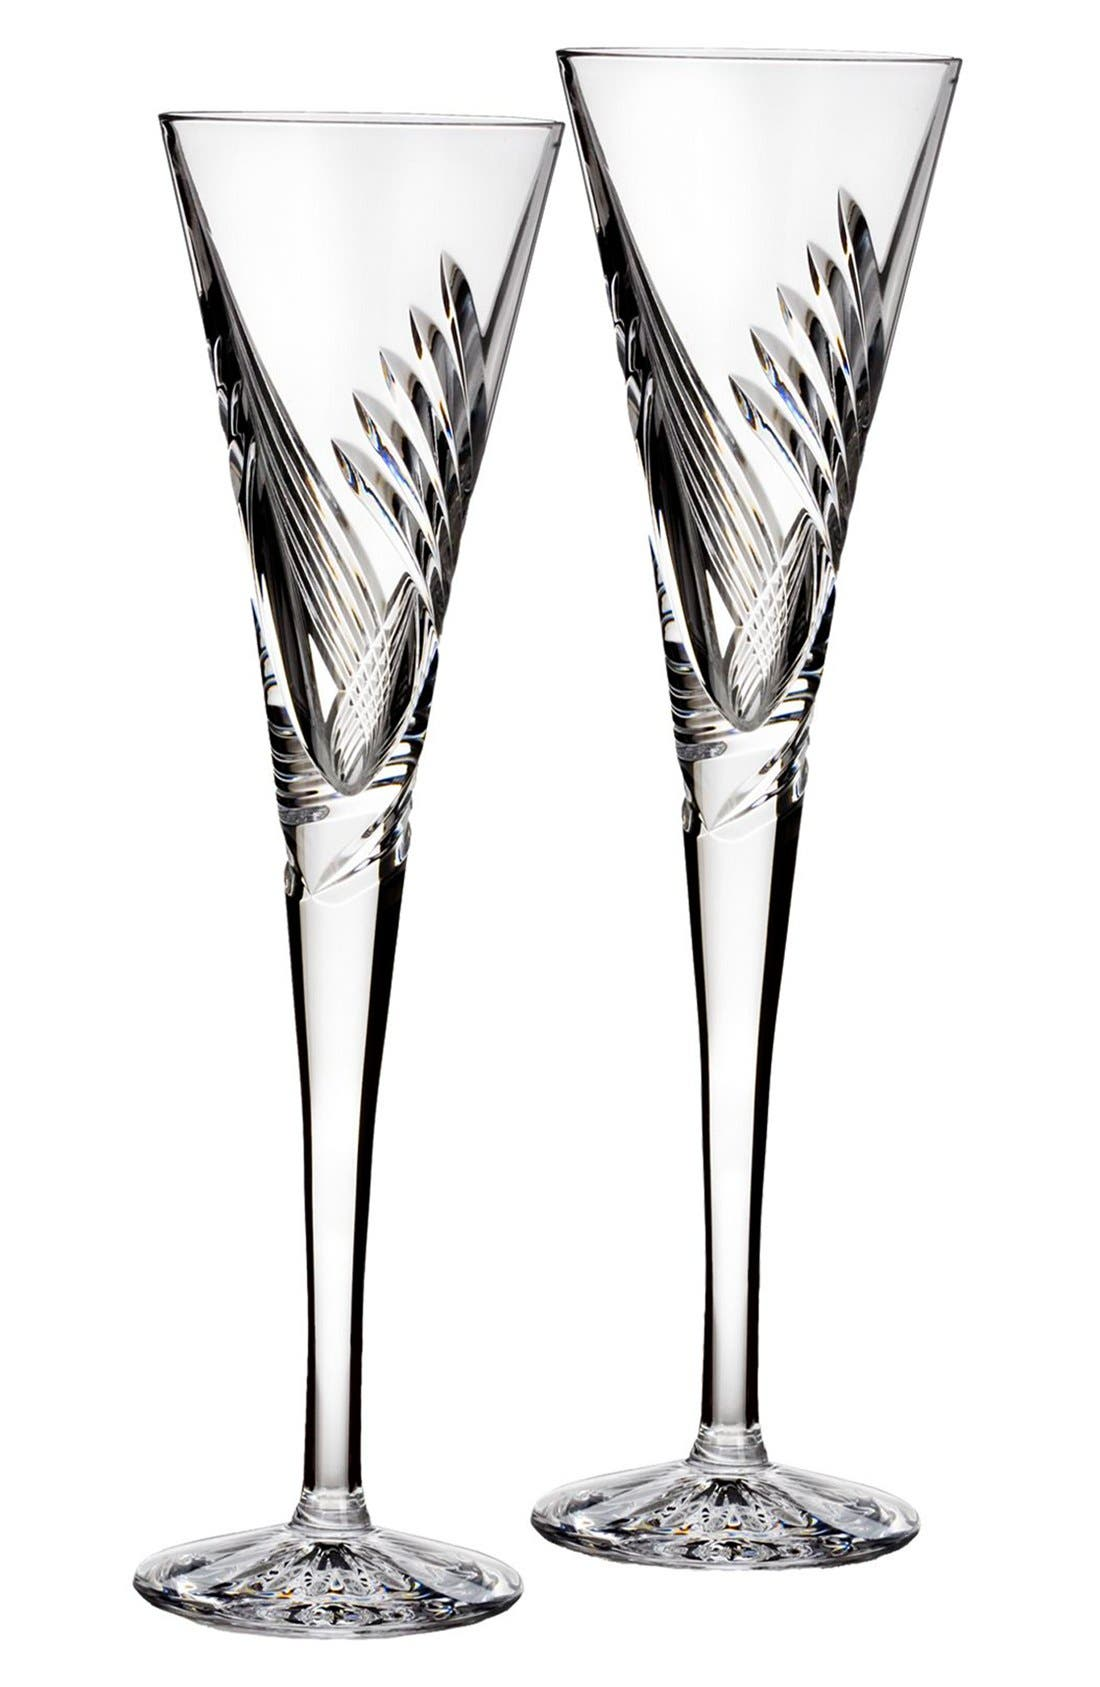 Alternate Image 1 Selected - Waterford 'Wishes Beginnings' Lead Crystal Toasting Flutes (Set of 2)